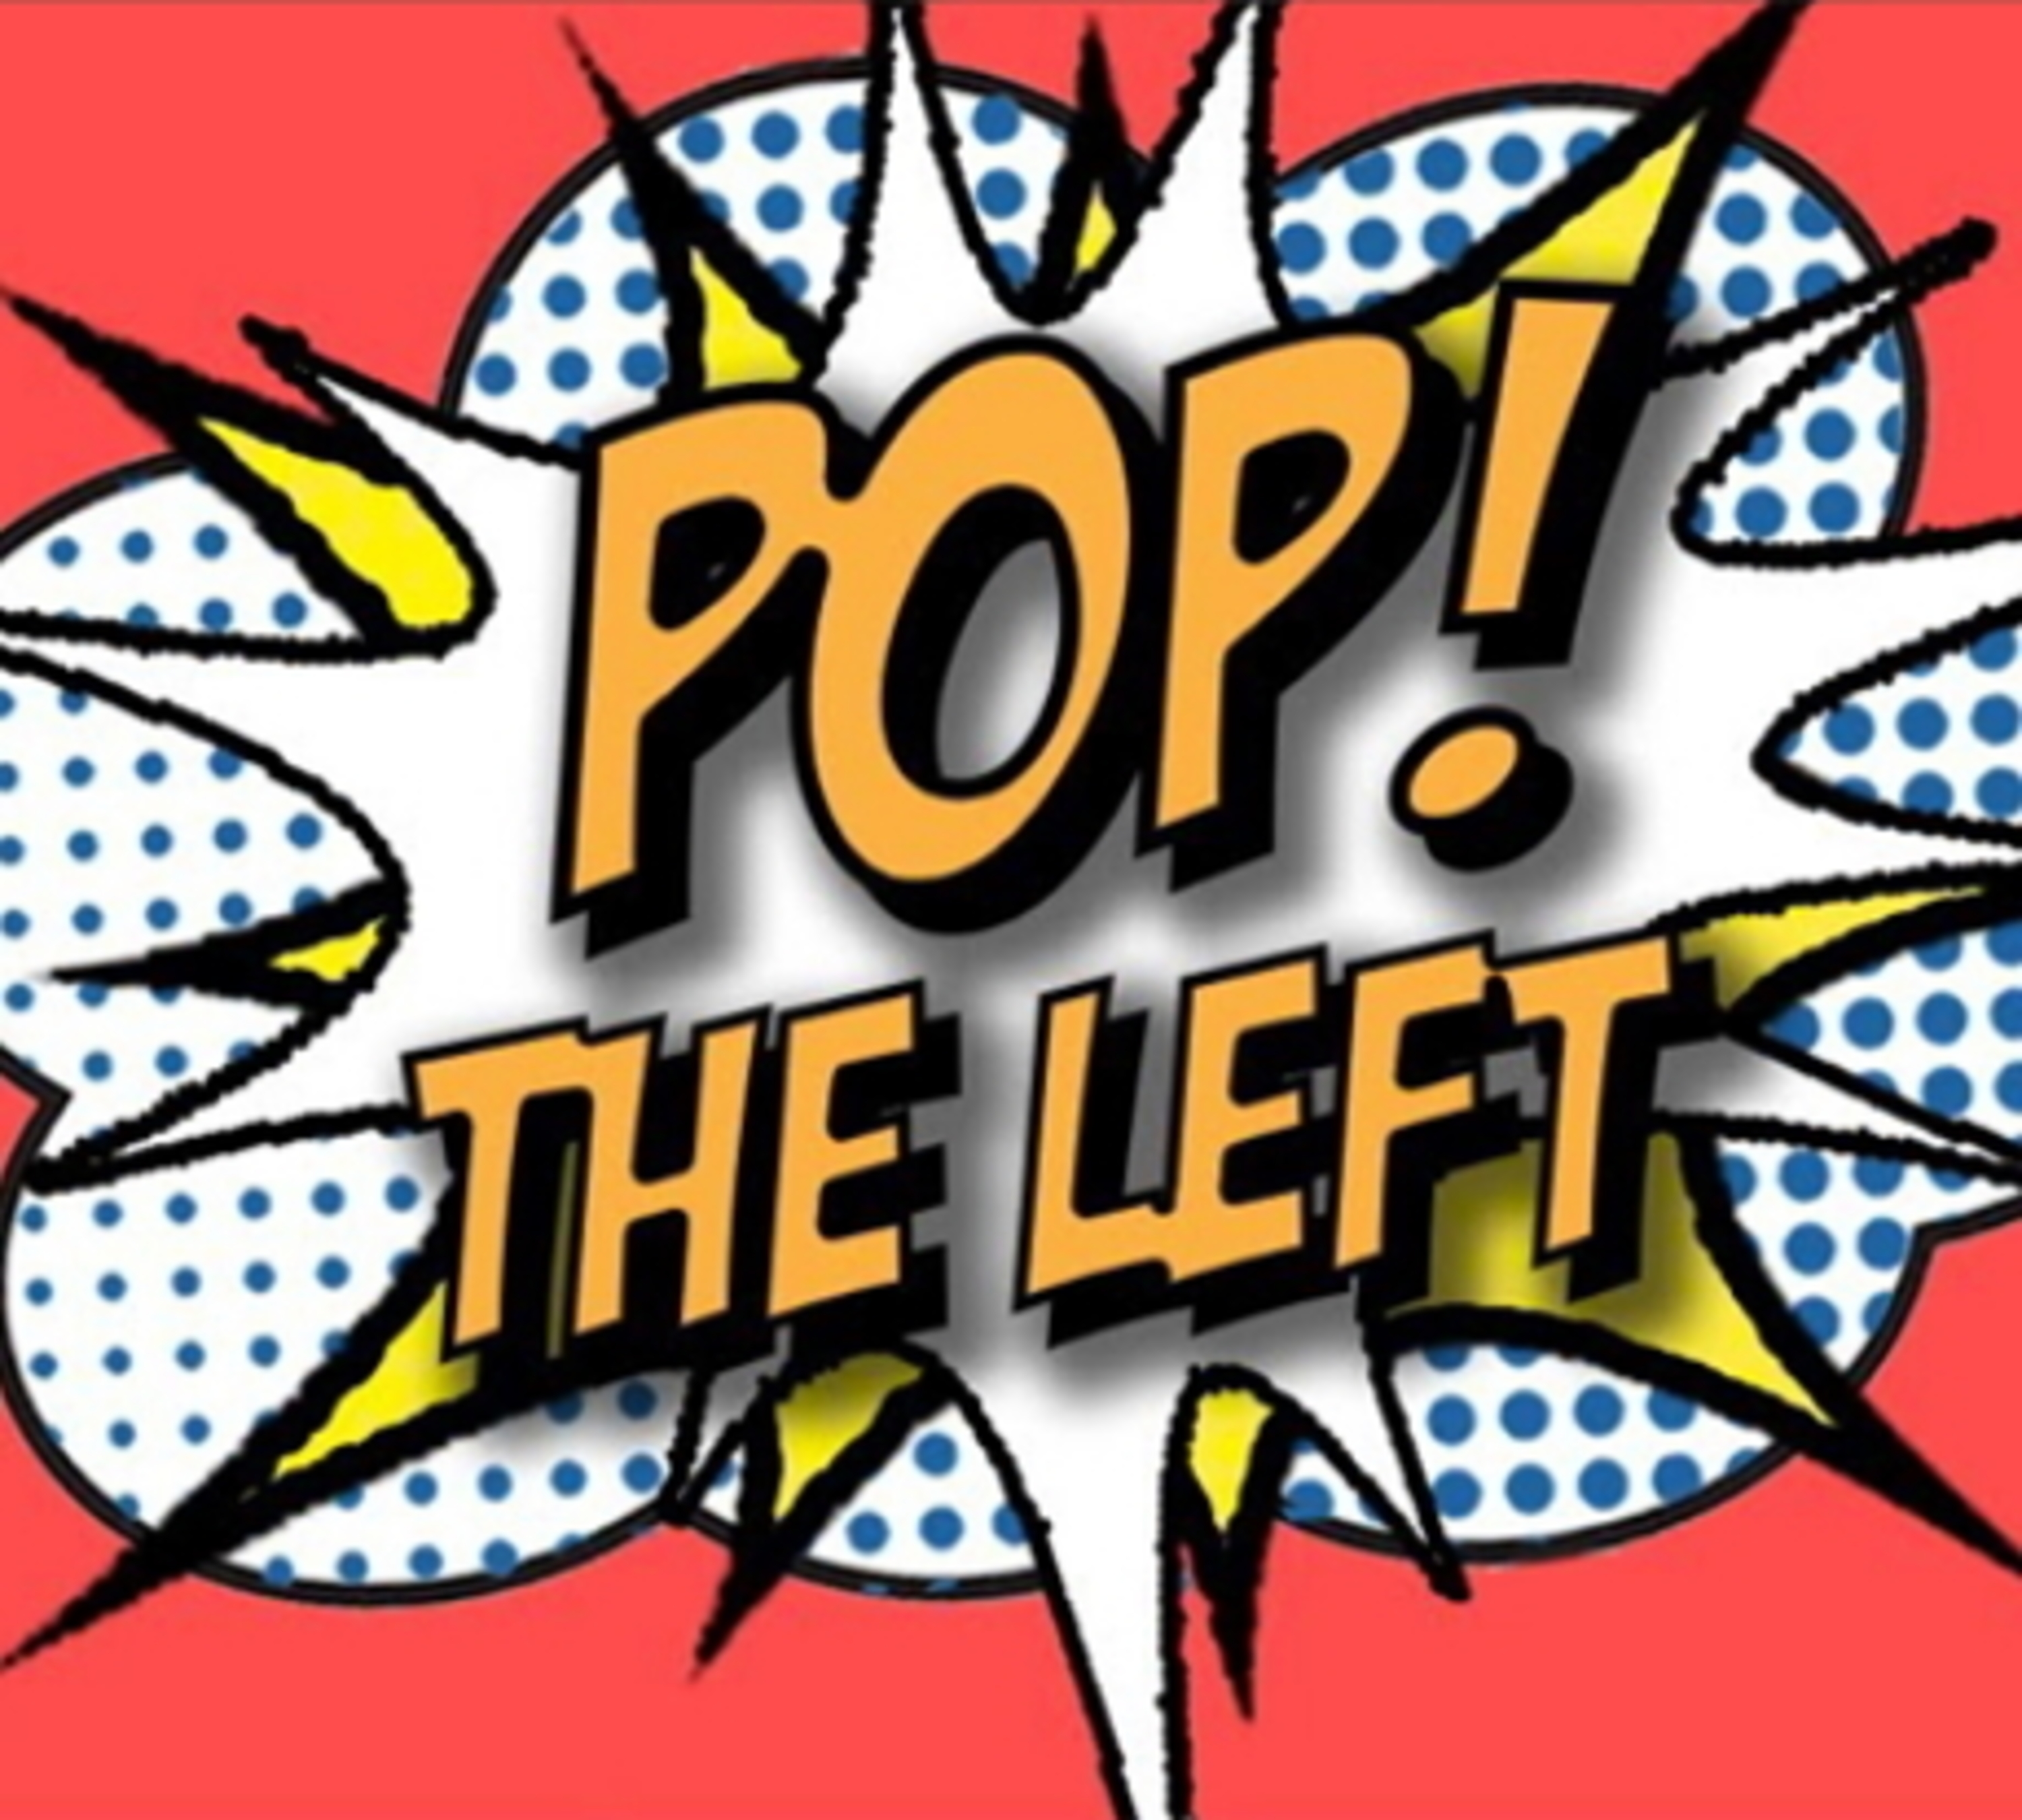 Pop the Left: Lukács and the Philosophy Trap